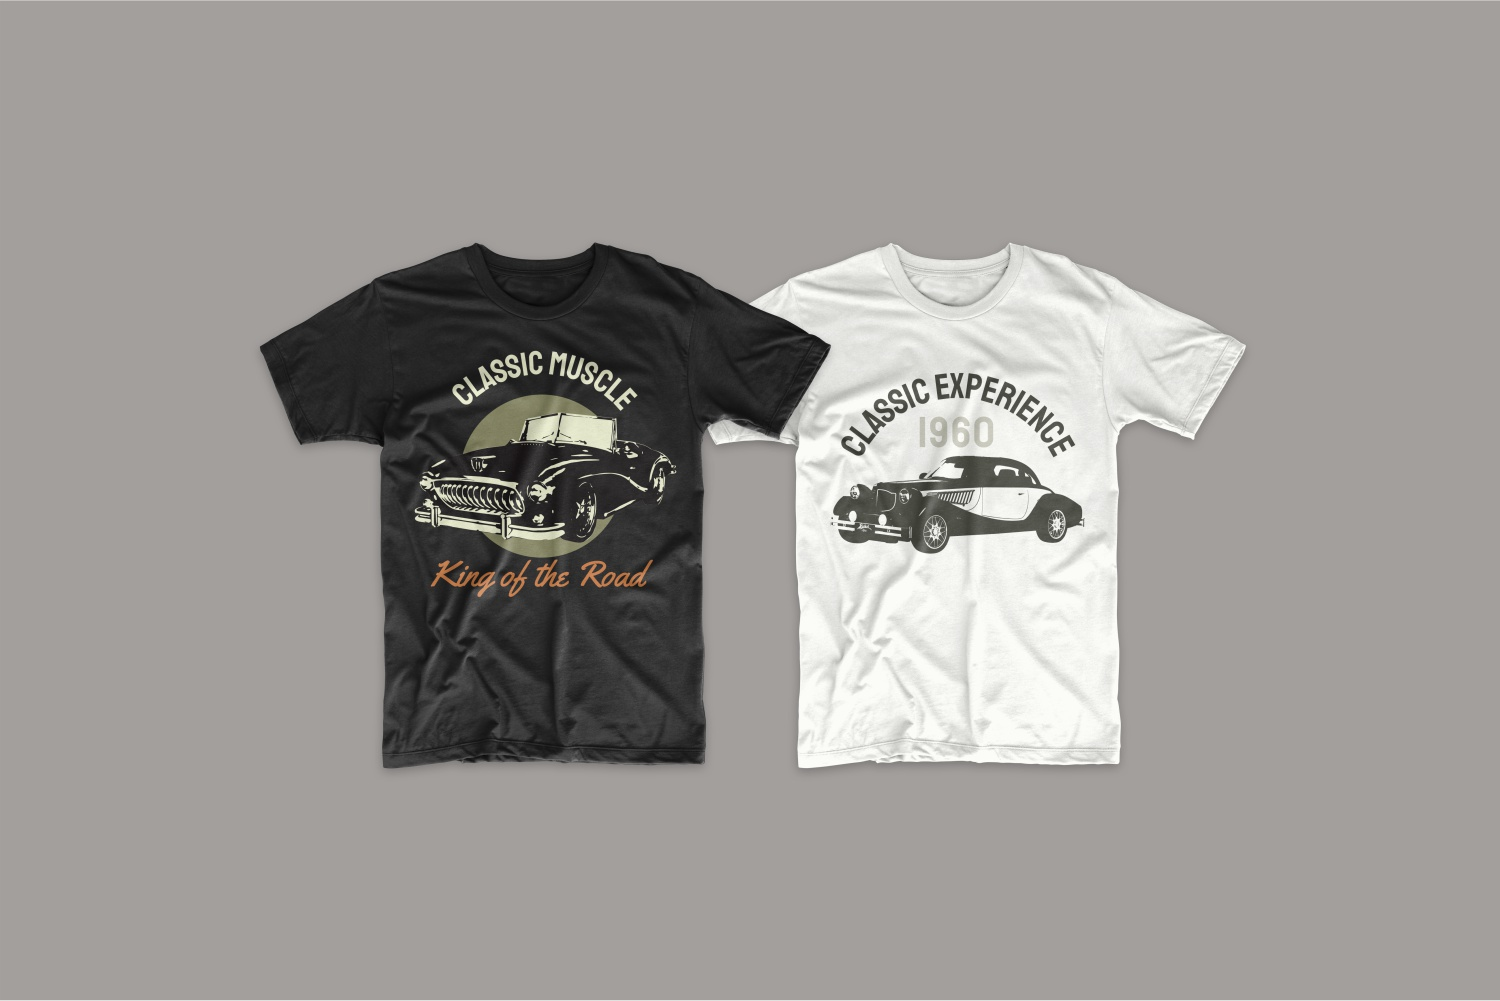 Two T-shirts - black and white with vintage cars.